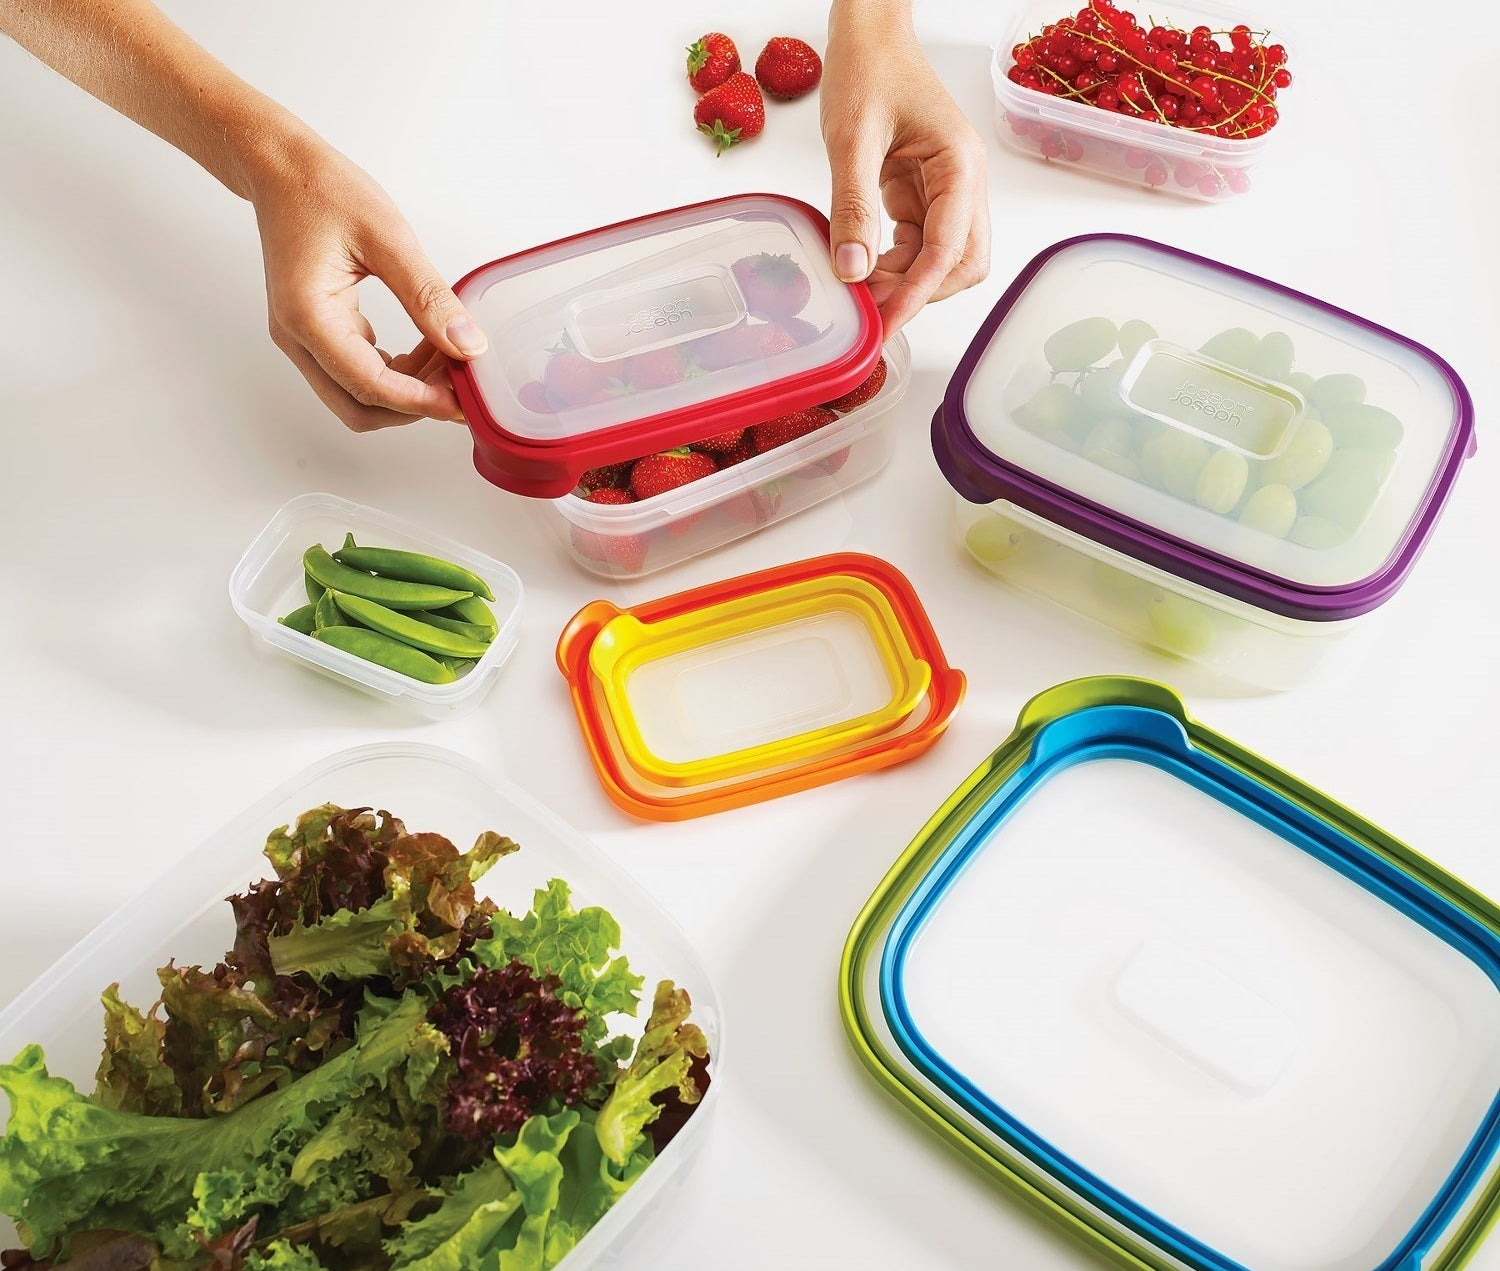 A set of stackable microwave- and freezer-safe storage containers with airtight lids to help your leftovers stay fresh for as long as possible.